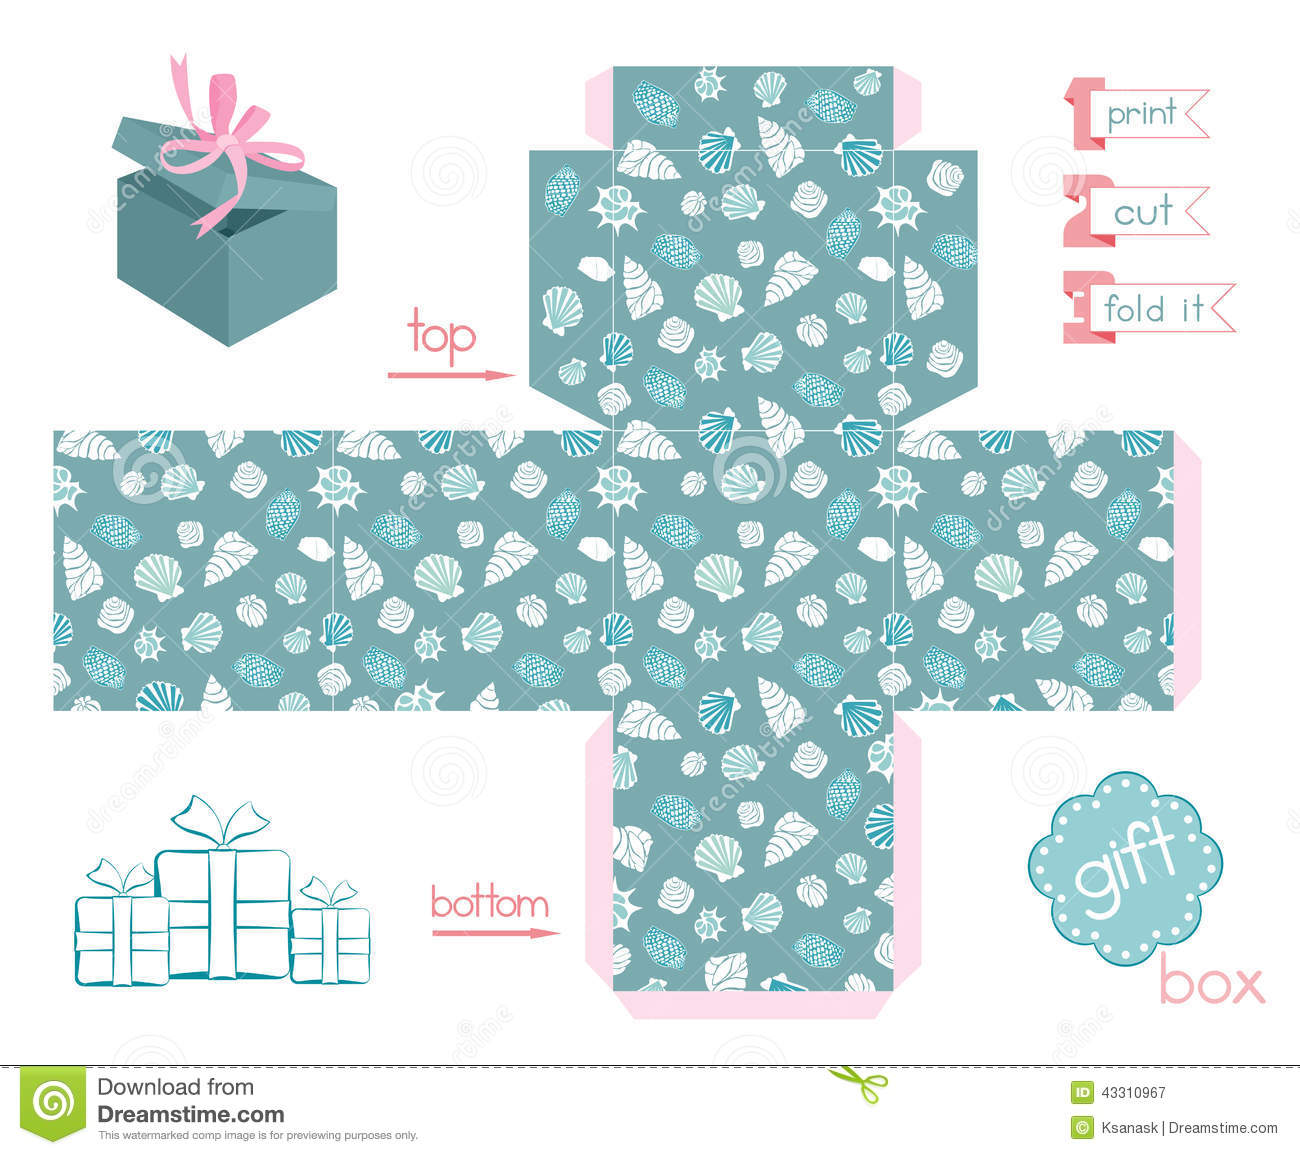 image about Printable Gift Box identify Printable Reward Box Distinct Ss Inventory Vector